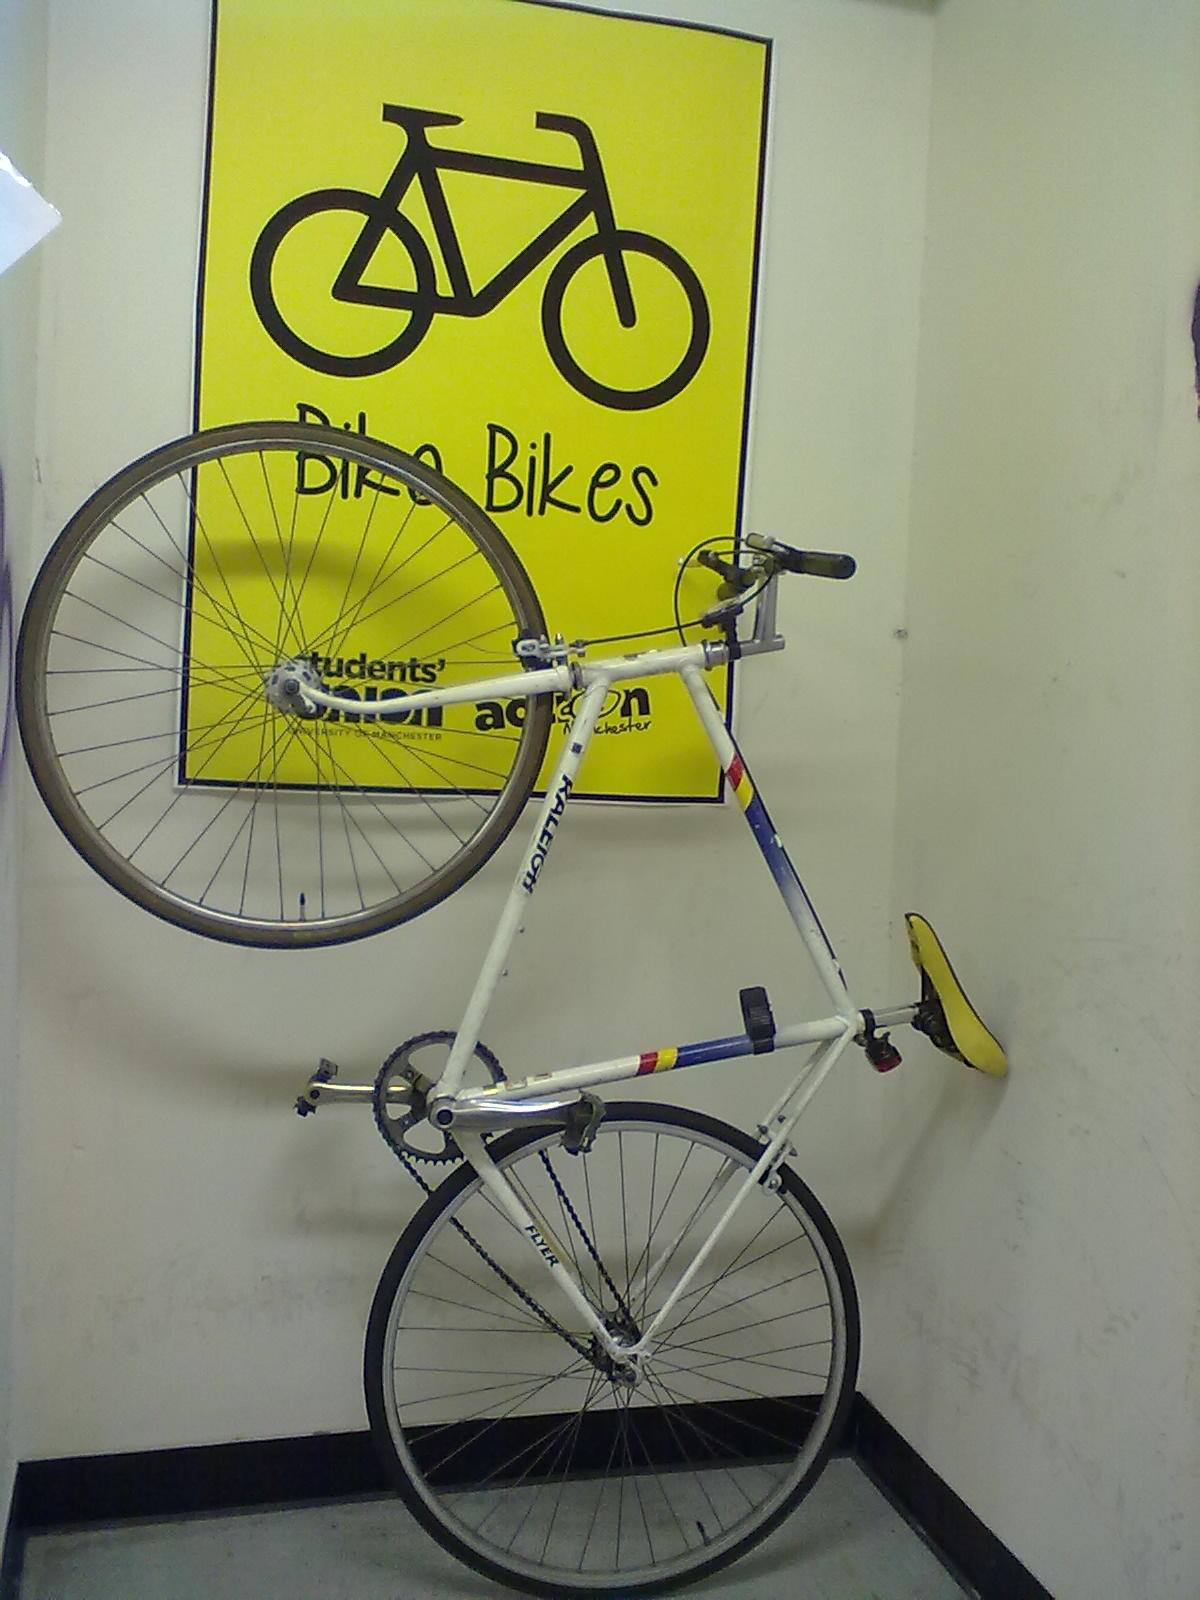 One of the bikes at Biko